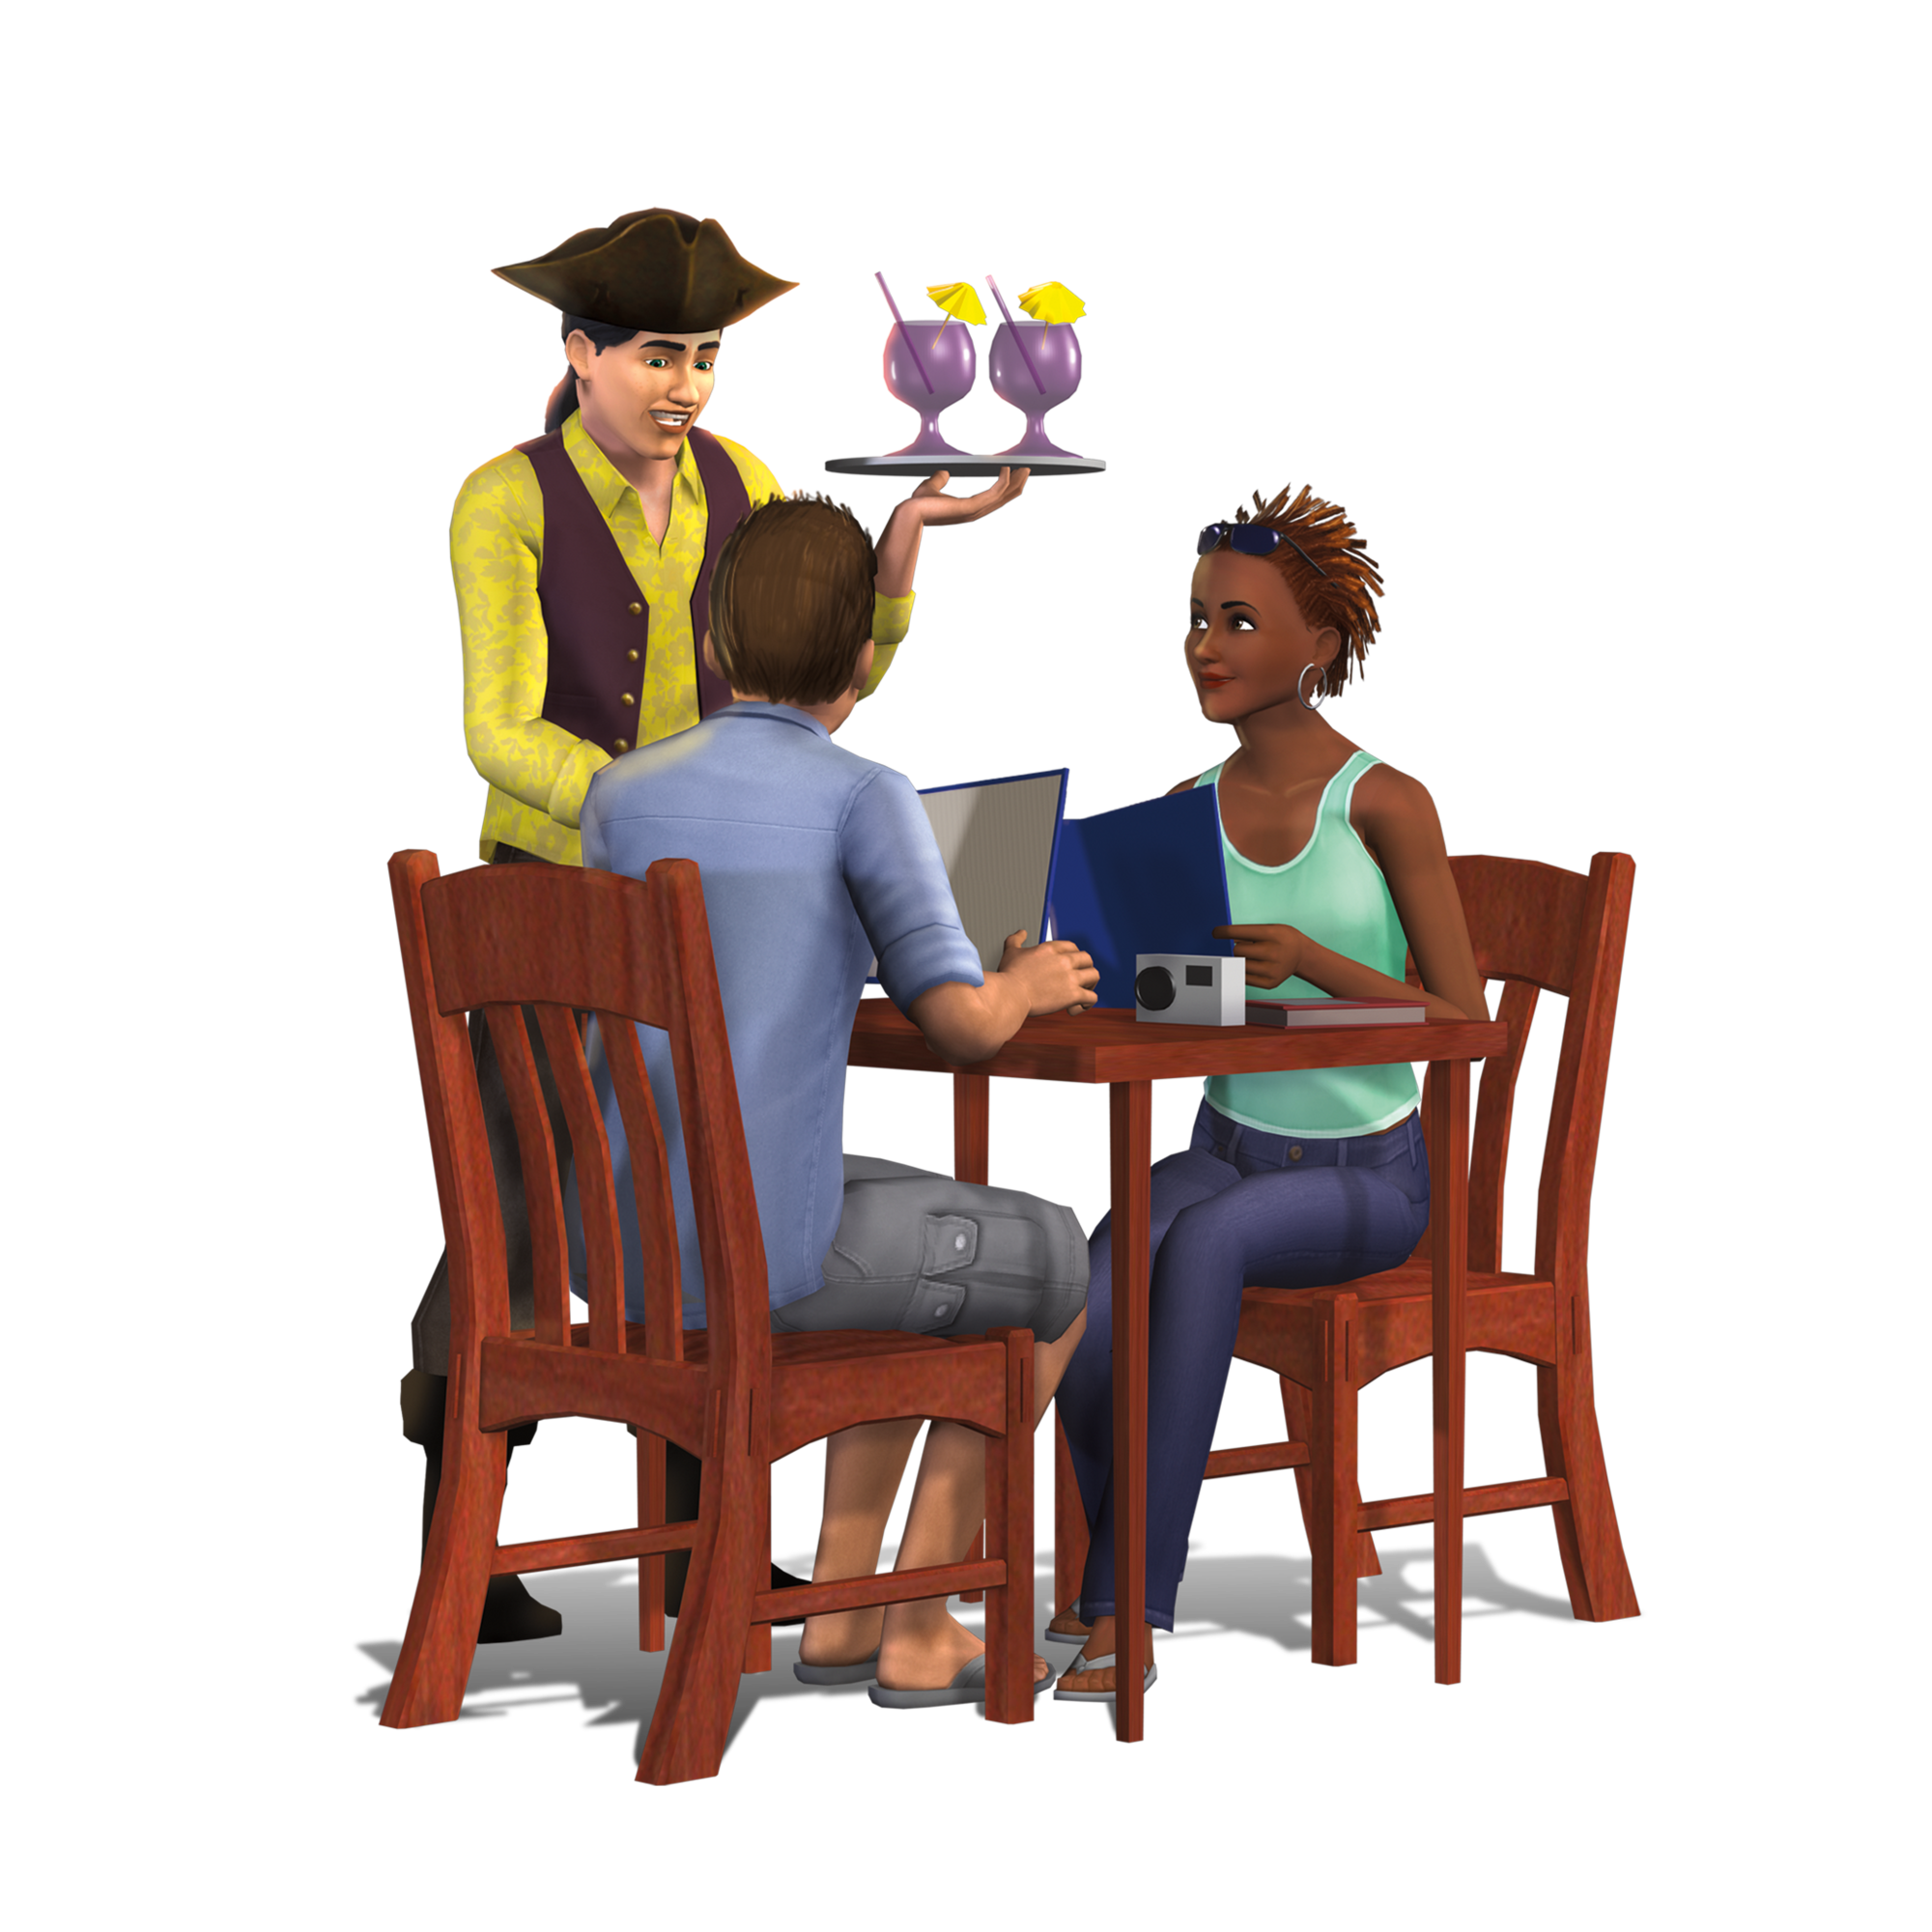 Diner drawing sims 4. Barnacle bay the wiki